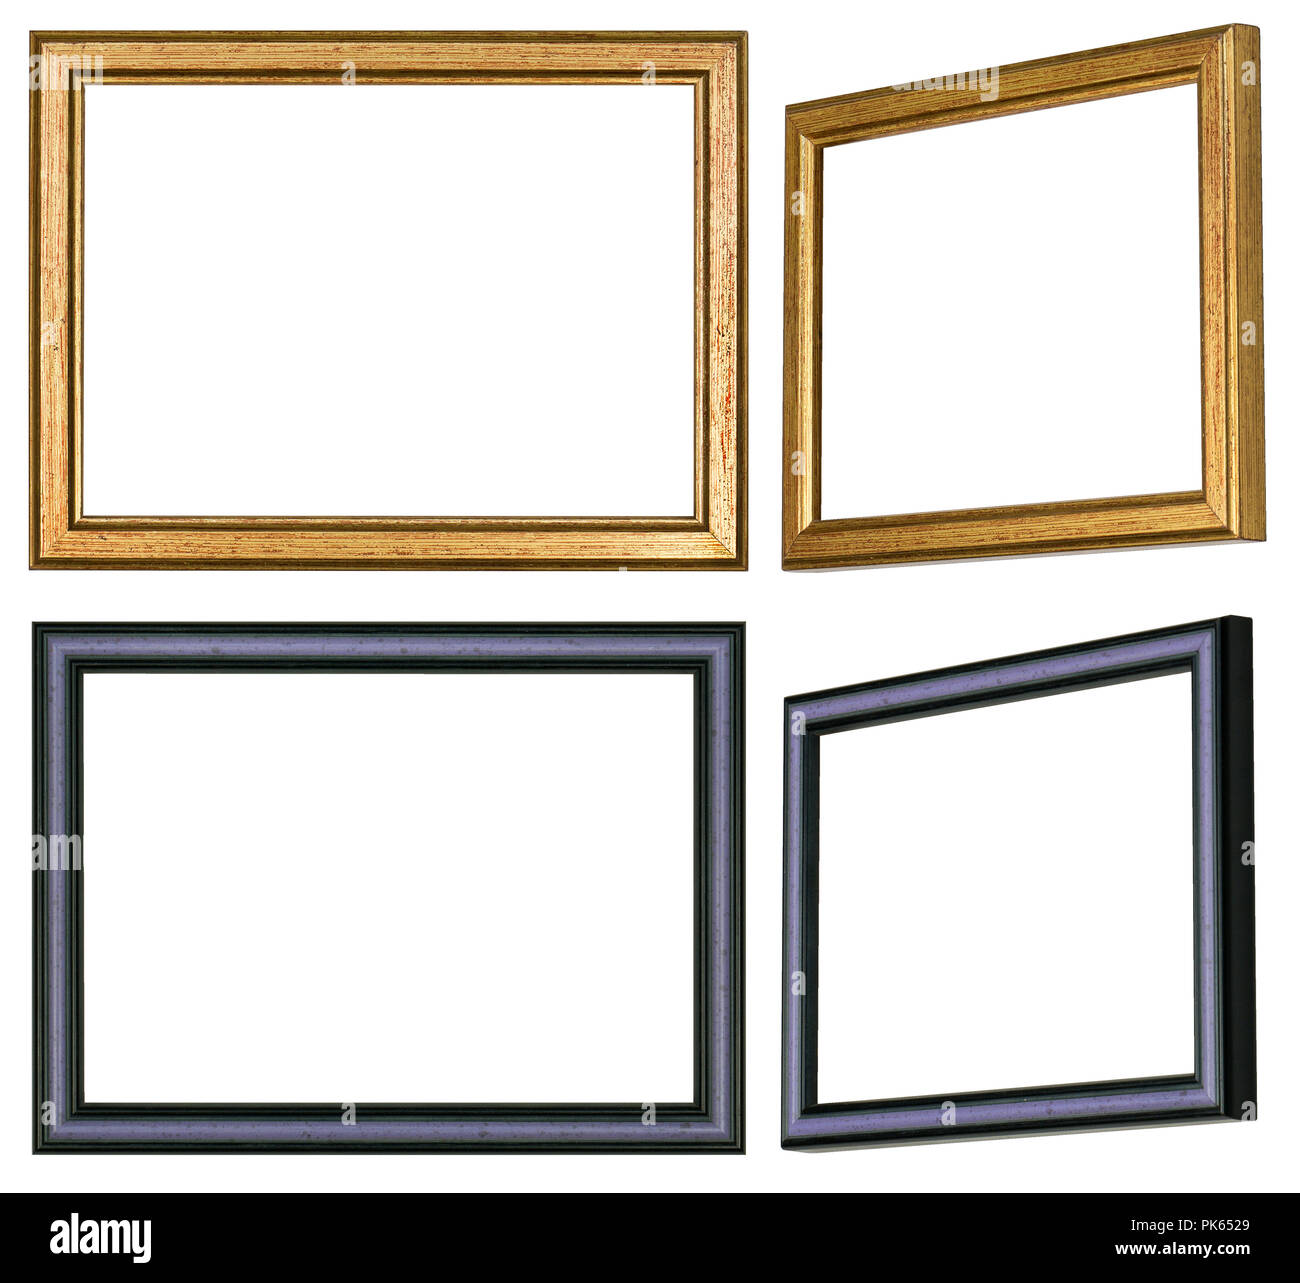 One Straight And One Slanted View Of Two Different Picture Frames